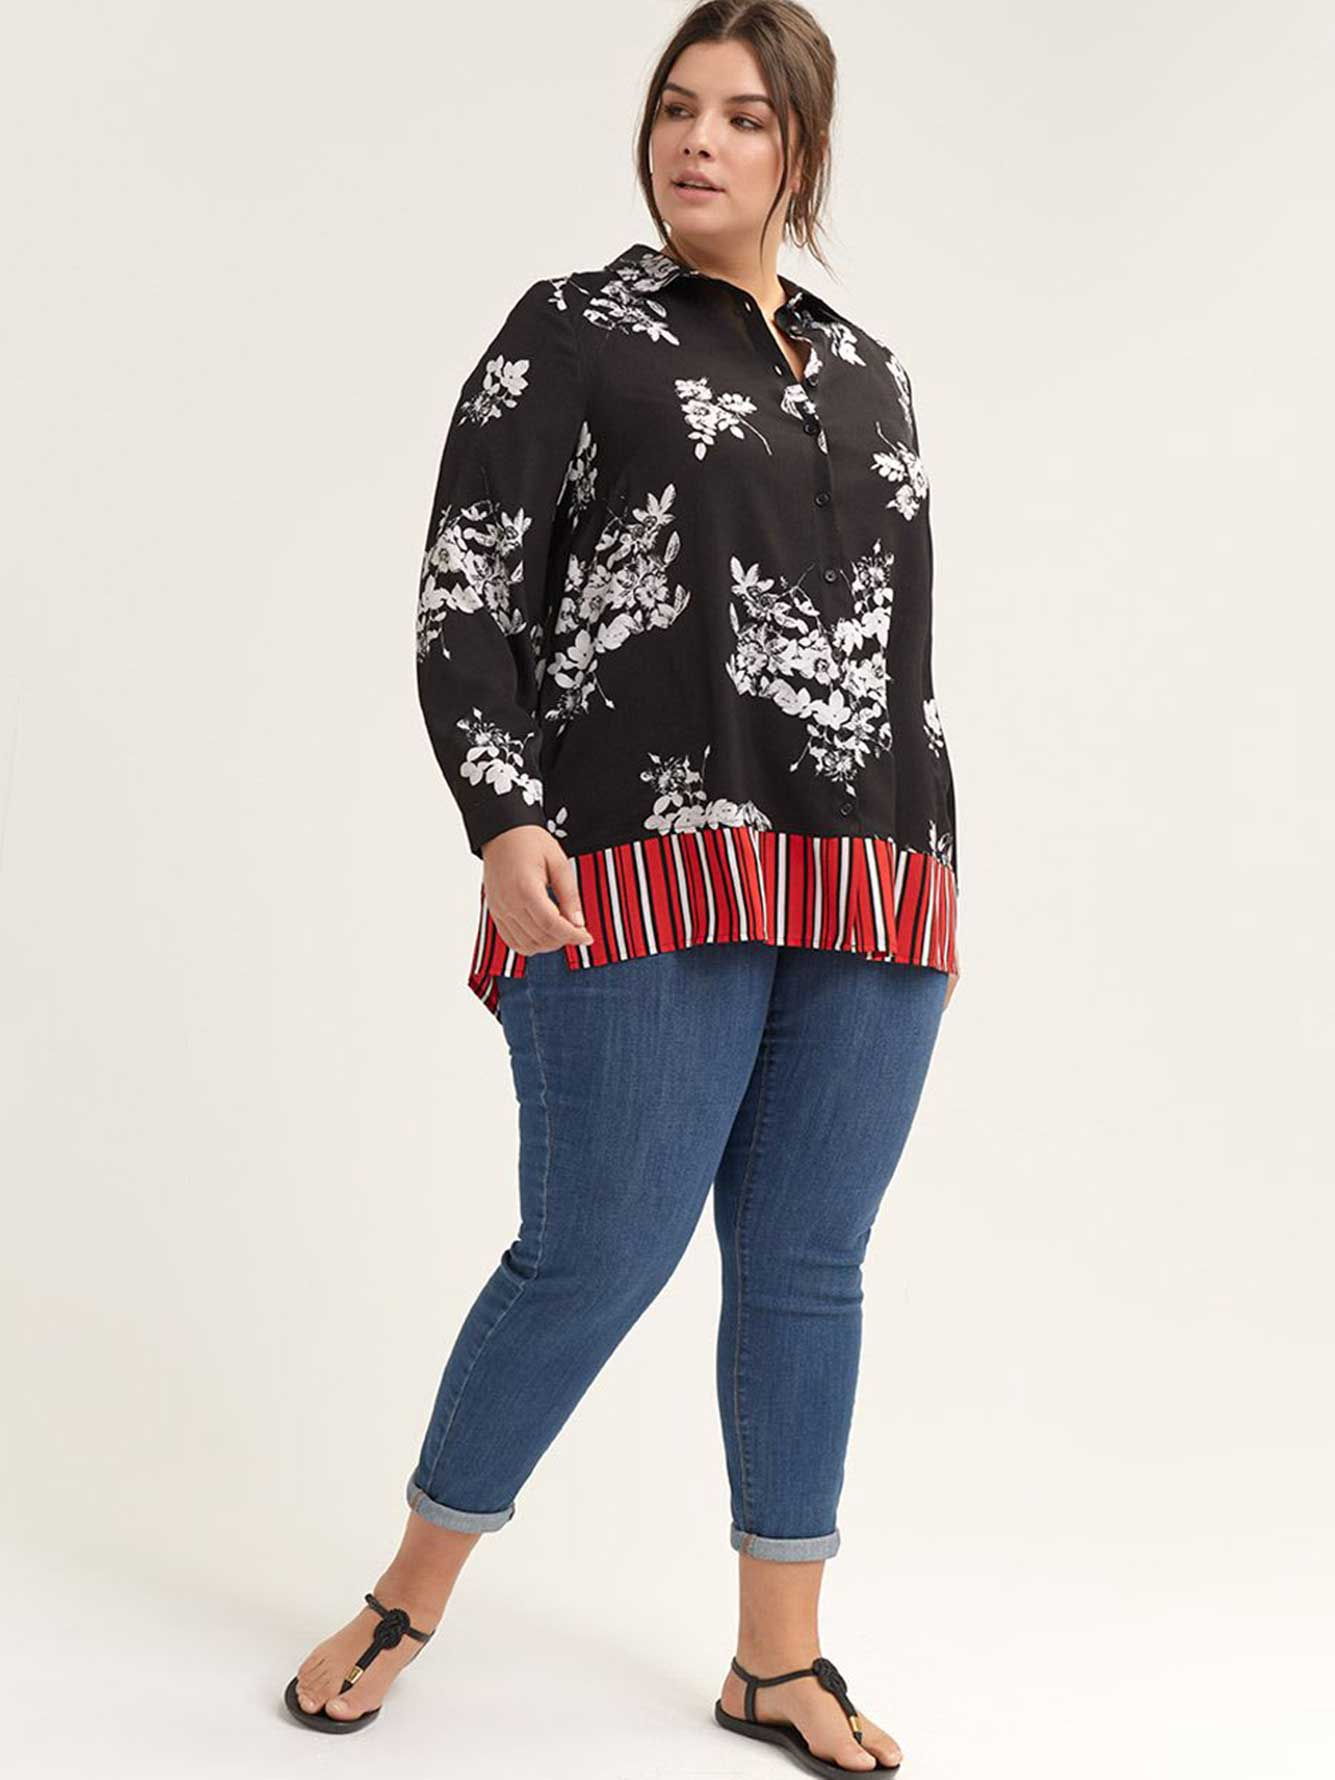 Floral Button-Down Blouse with Contrasting Stripes - In Every Story